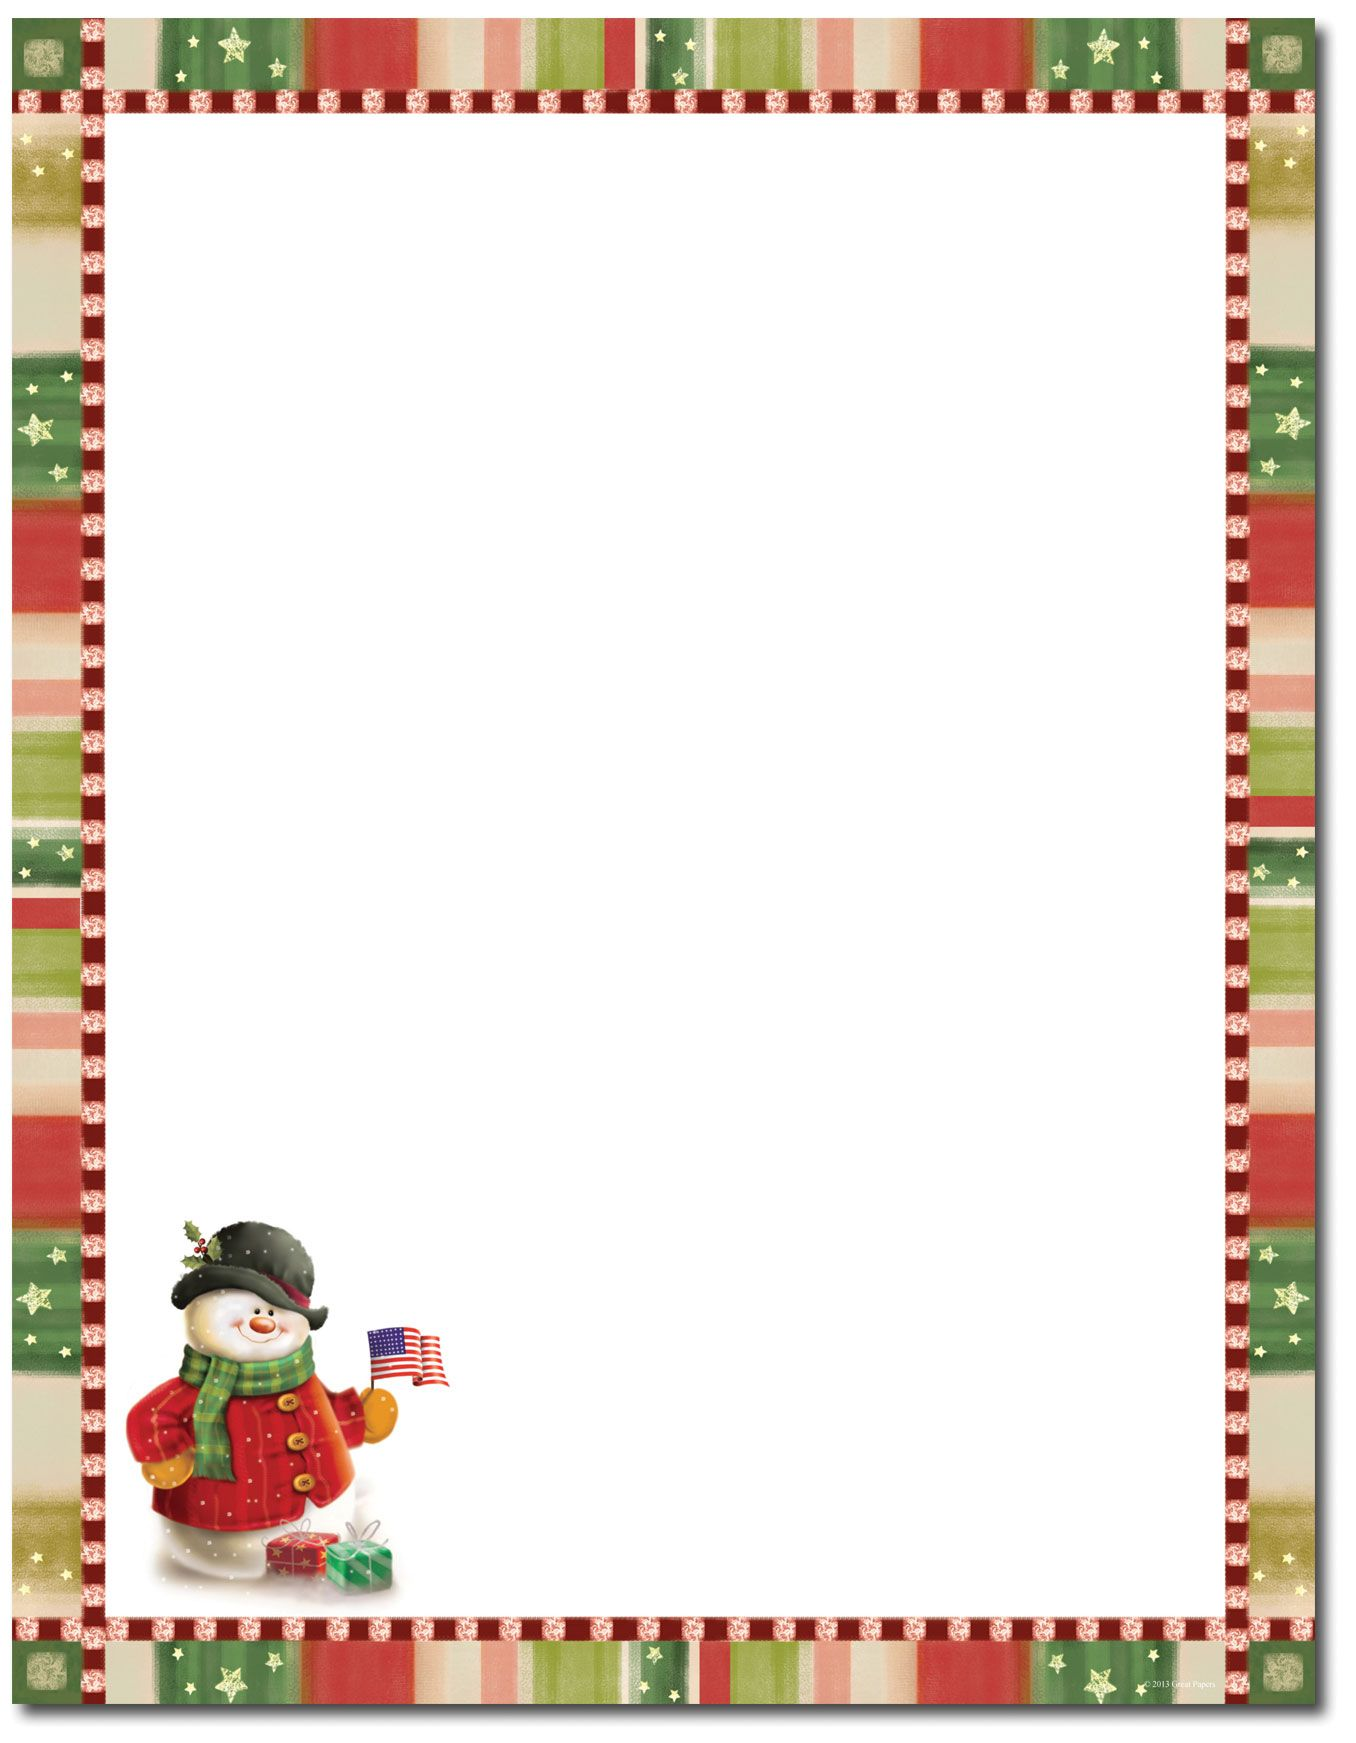 5 Images of Free Printable Christmas Stationery Borders | Unit ...